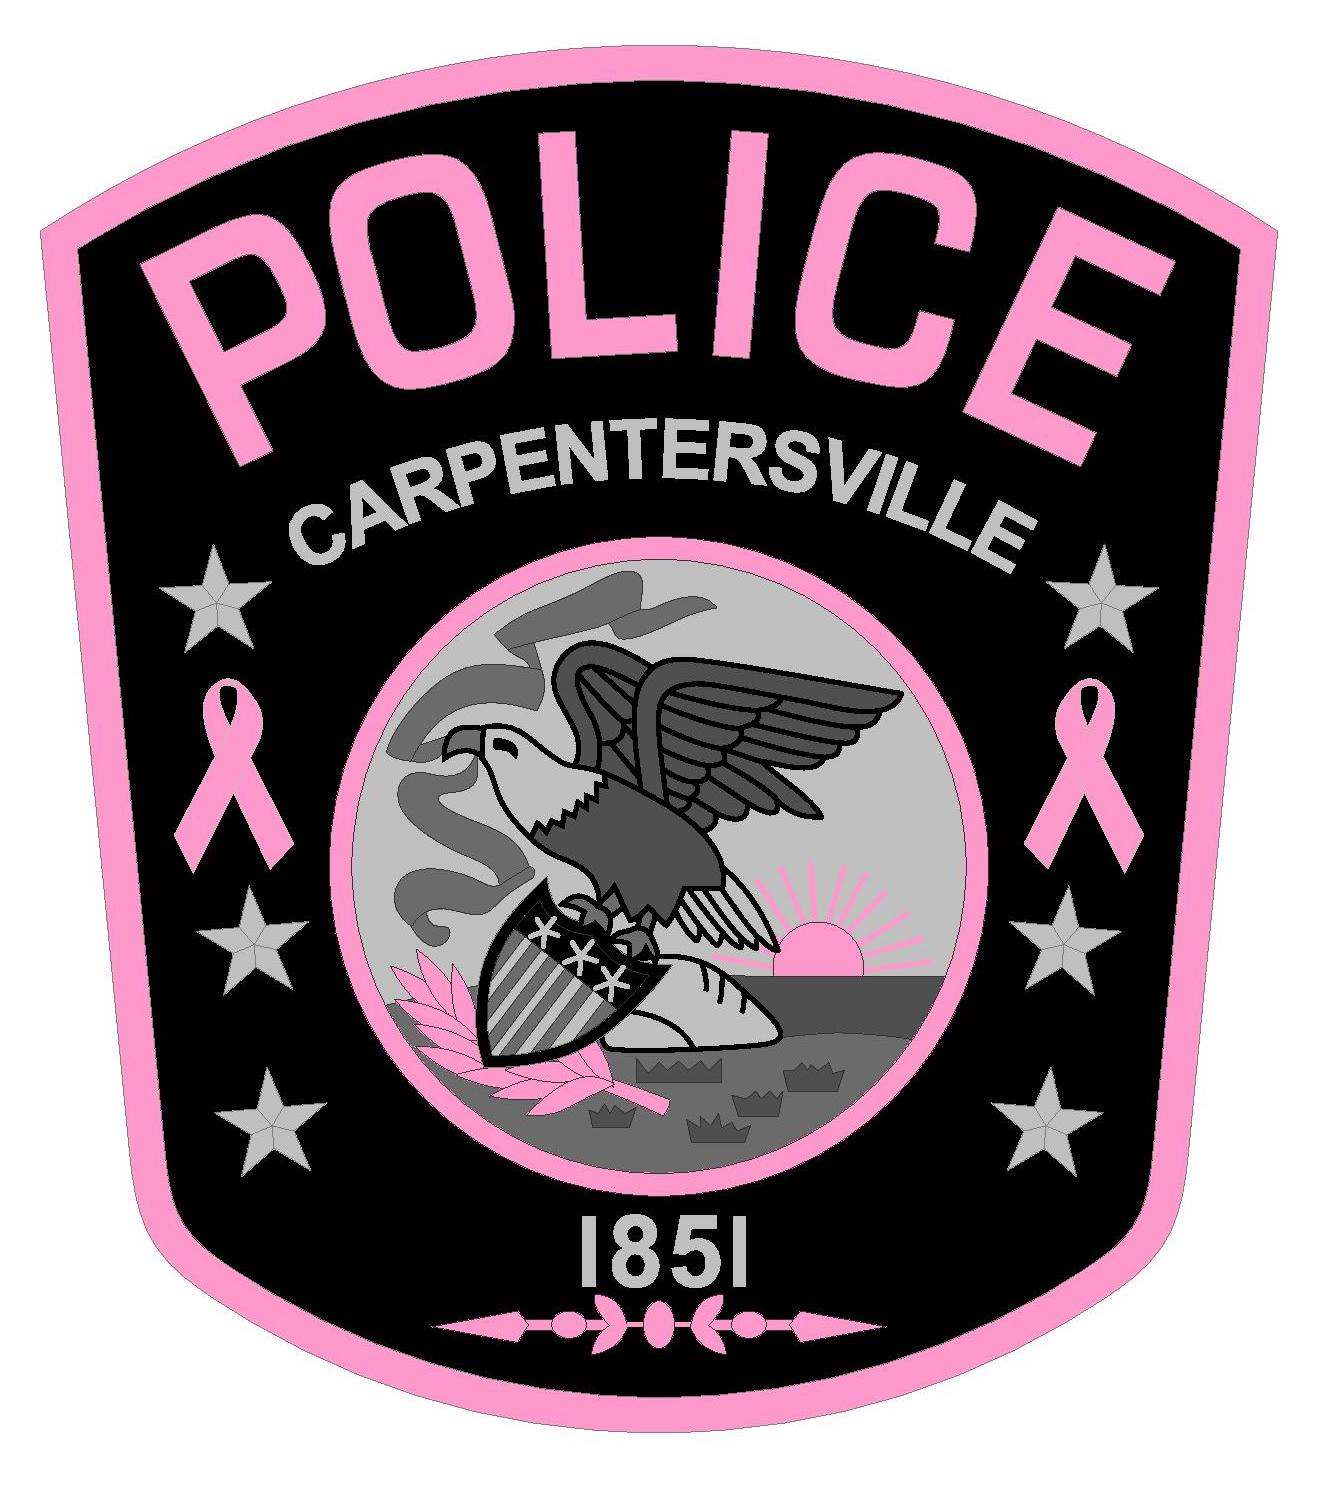 Carpentersville Police (IL) - PINK PATCH-page-001.jpg